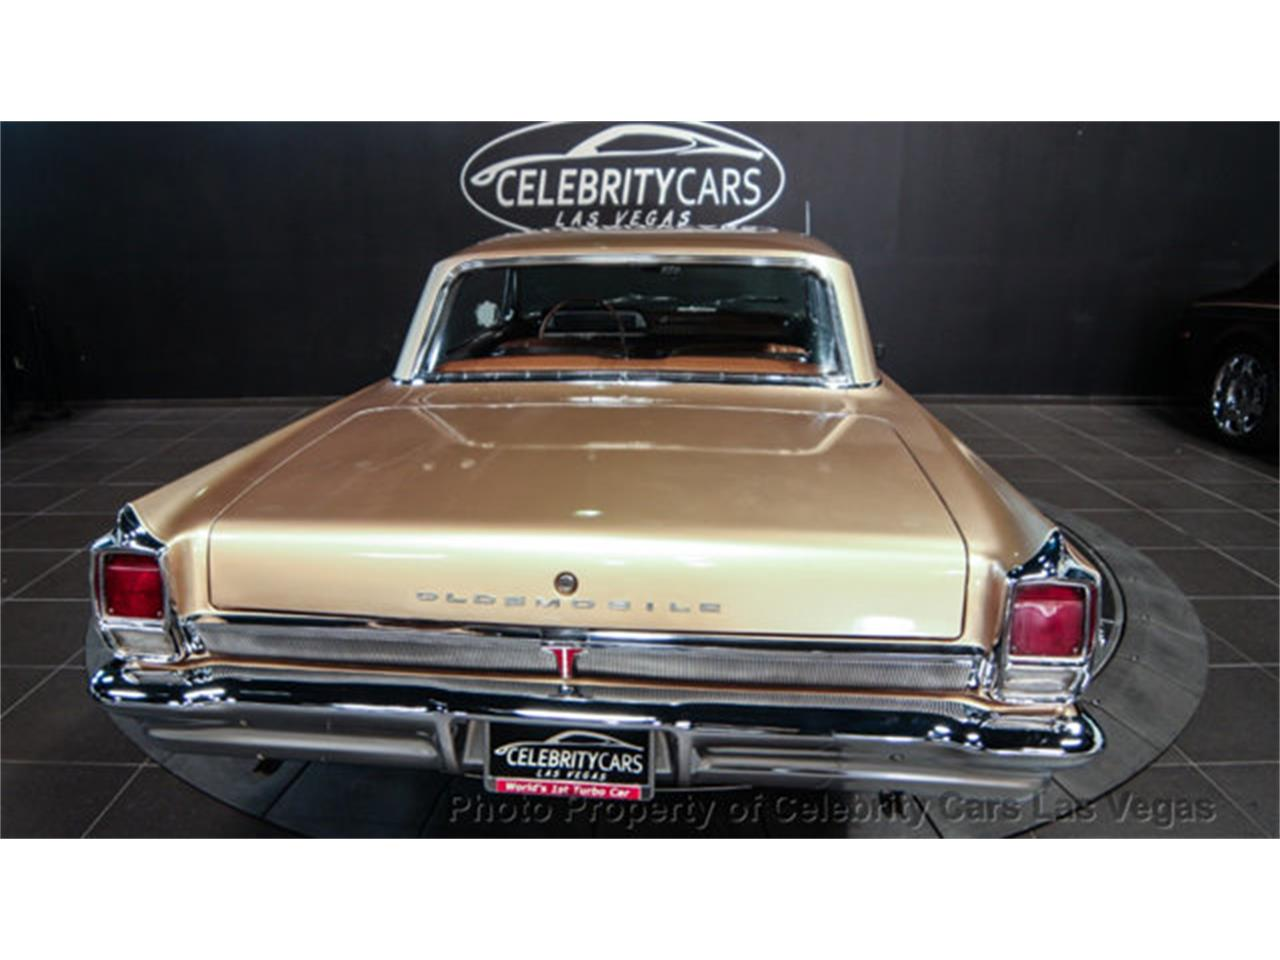 Large Picture of Classic '63 Jet fire Turbocharged located in Las Vegas Nevada Offered by Celebrity Cars Las Vegas - J98V